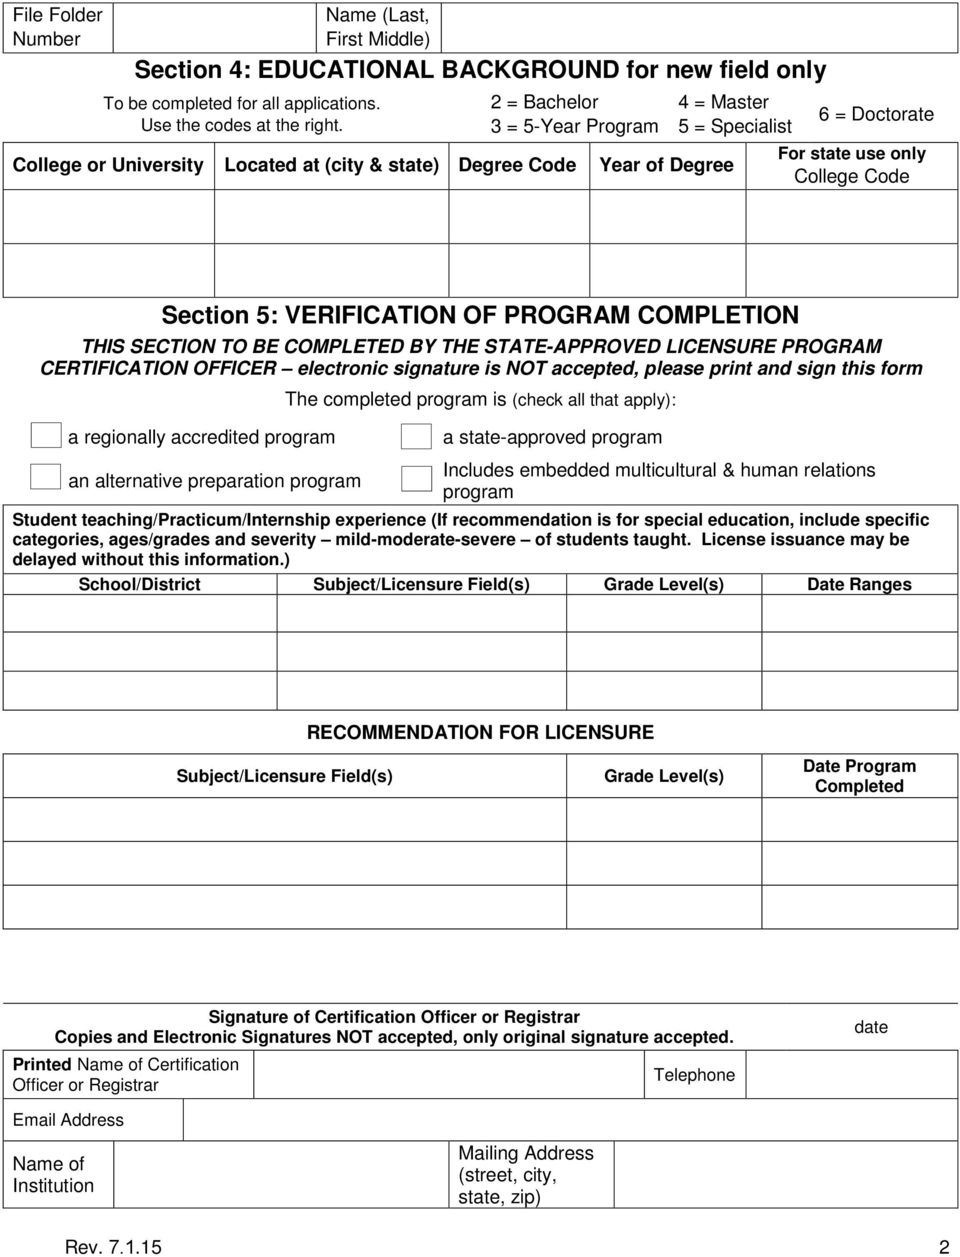 VERIFICATION OF PROGRAM COMPLETION THIS SECTION TO BE COMPLETED BY THE STATE-APPROVED LICENSURE PROGRAM CERTIFICATION OFFICER electronic signature is T accepted, please print and sign this form The